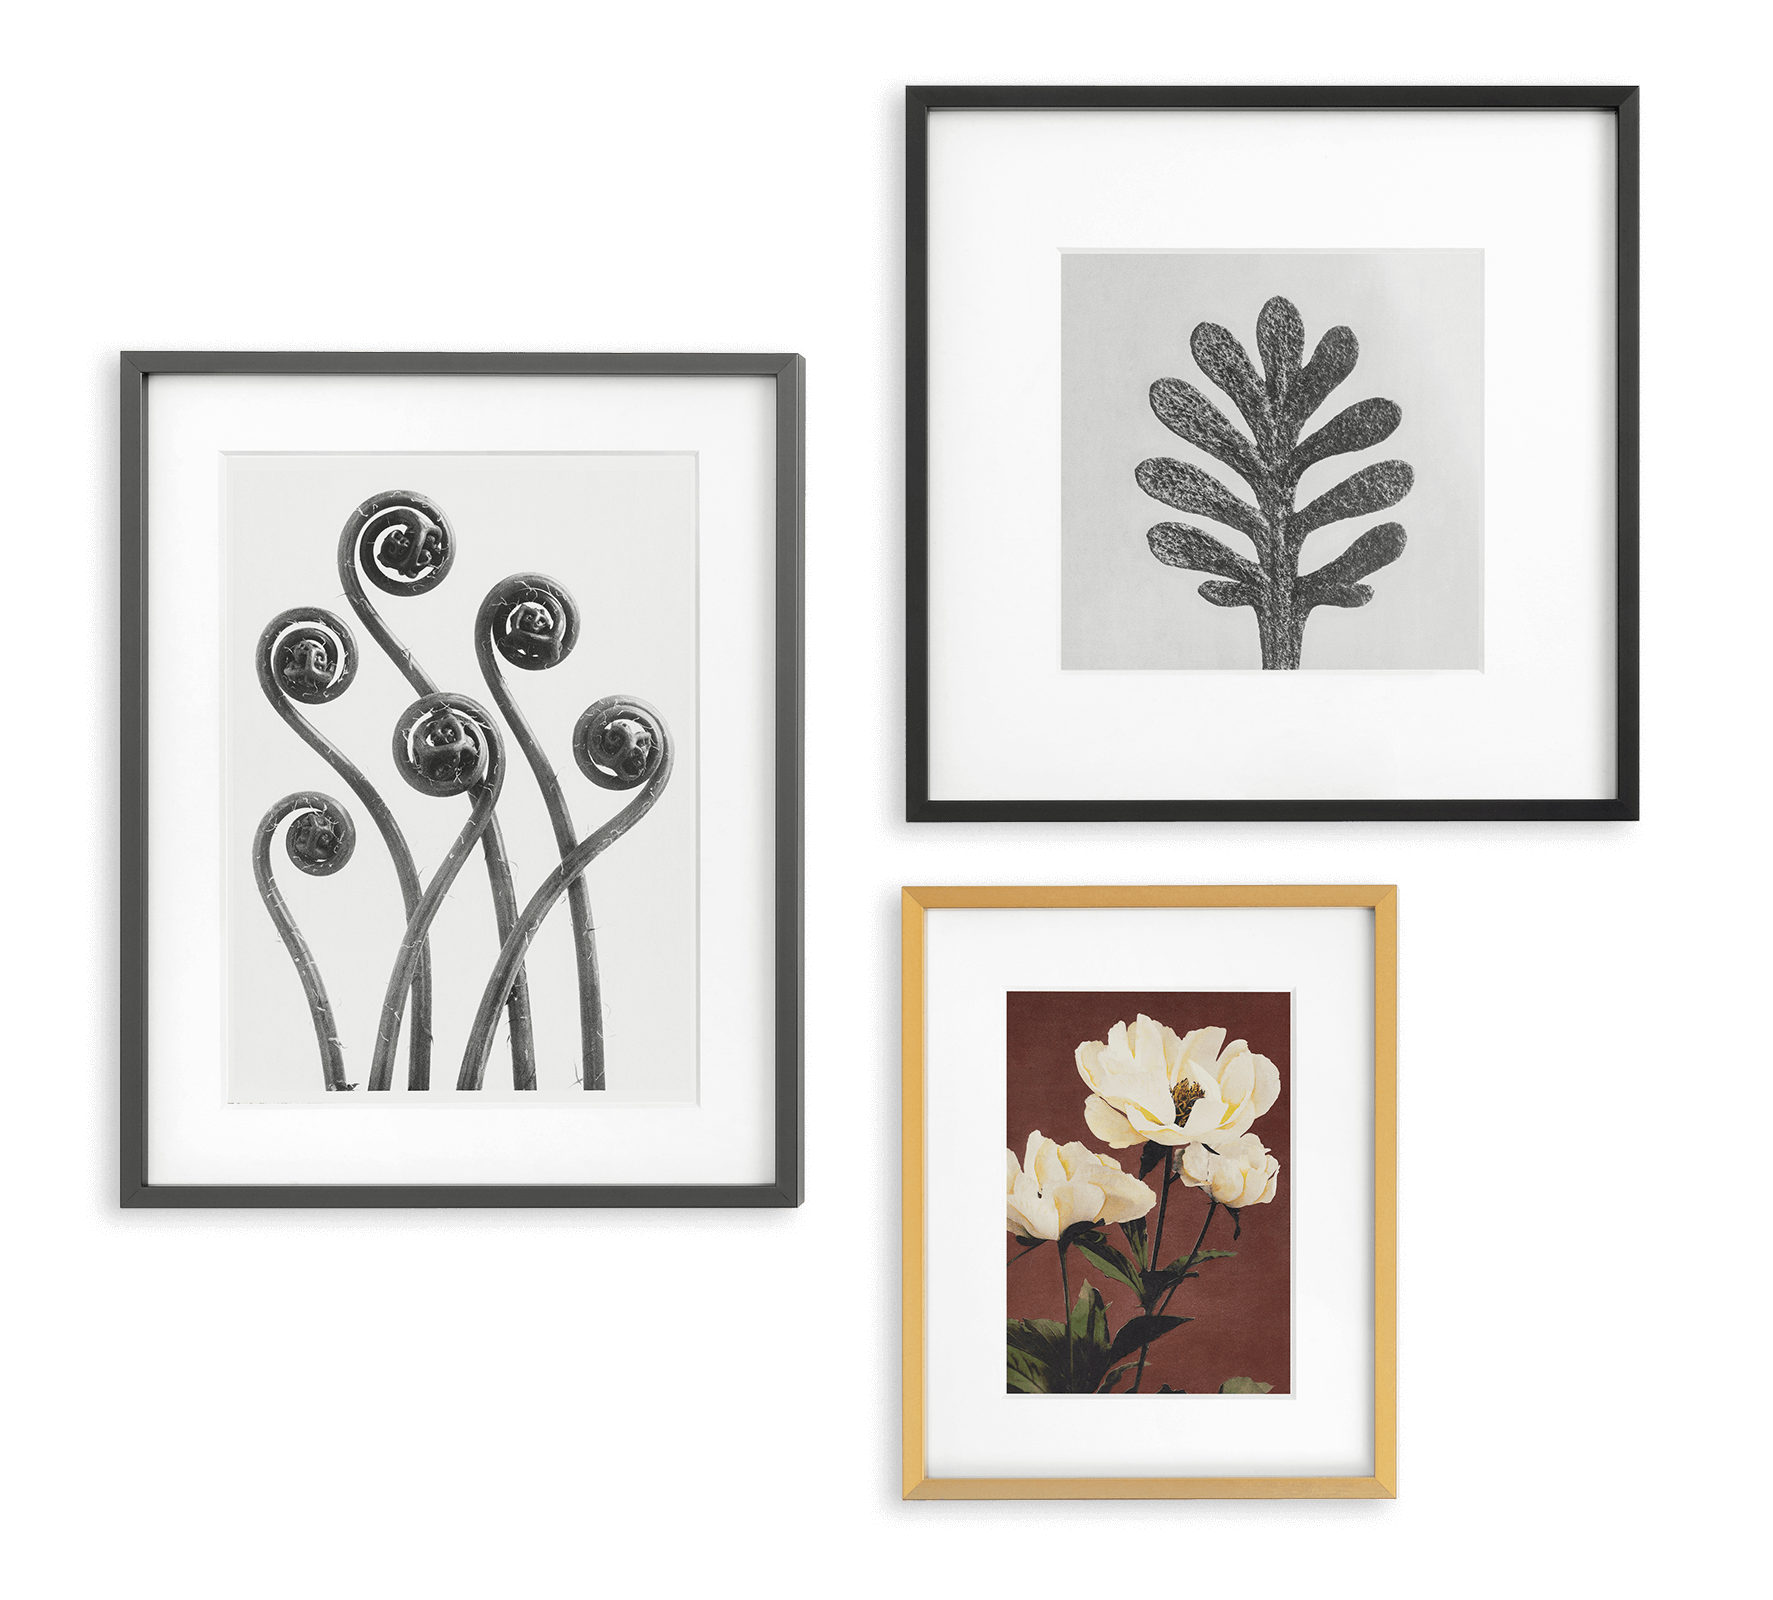 3 frames (2 black, 1 brass) with closeups of vintage botanicals like leafs and pansies